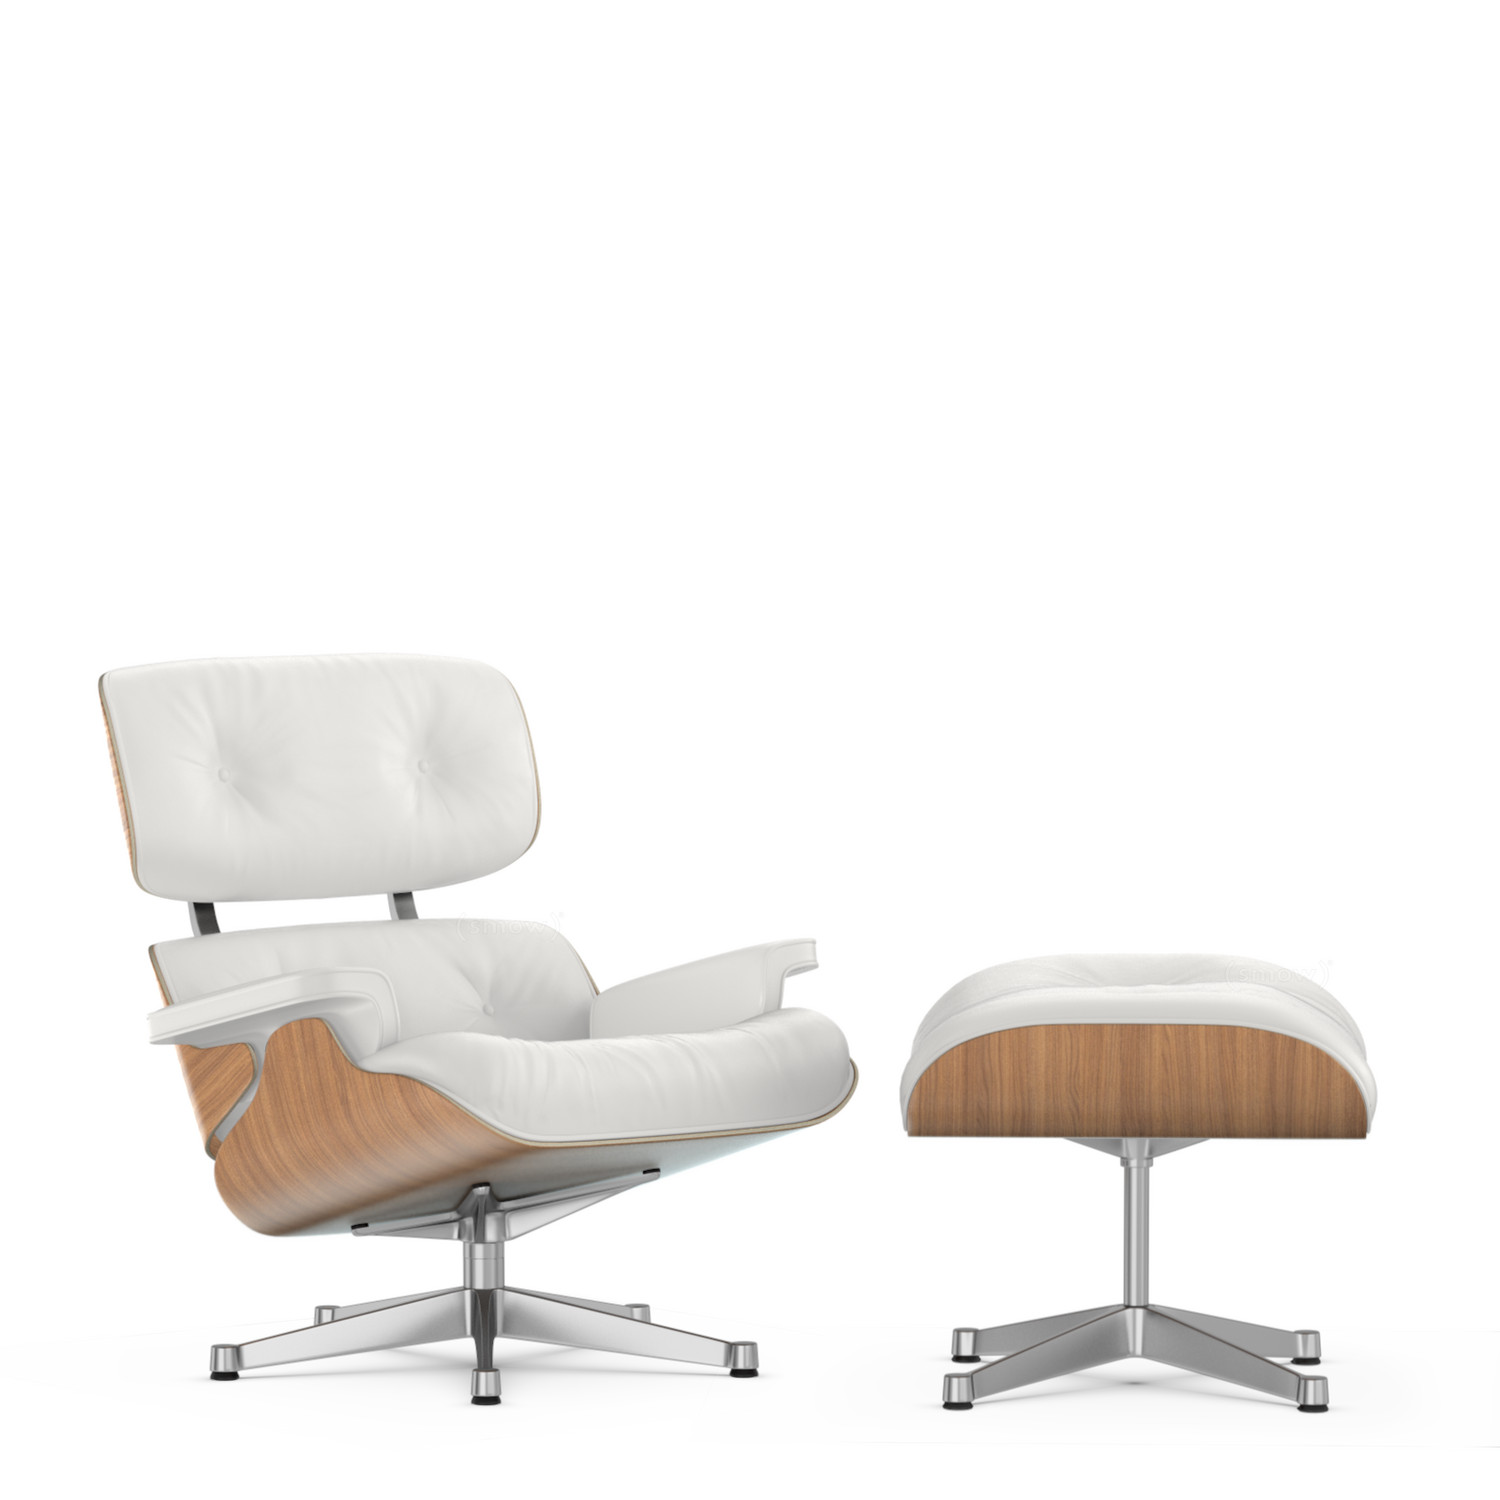 Vitra Lounge Chair & Ottoman White Version Walnut with white pigmentati